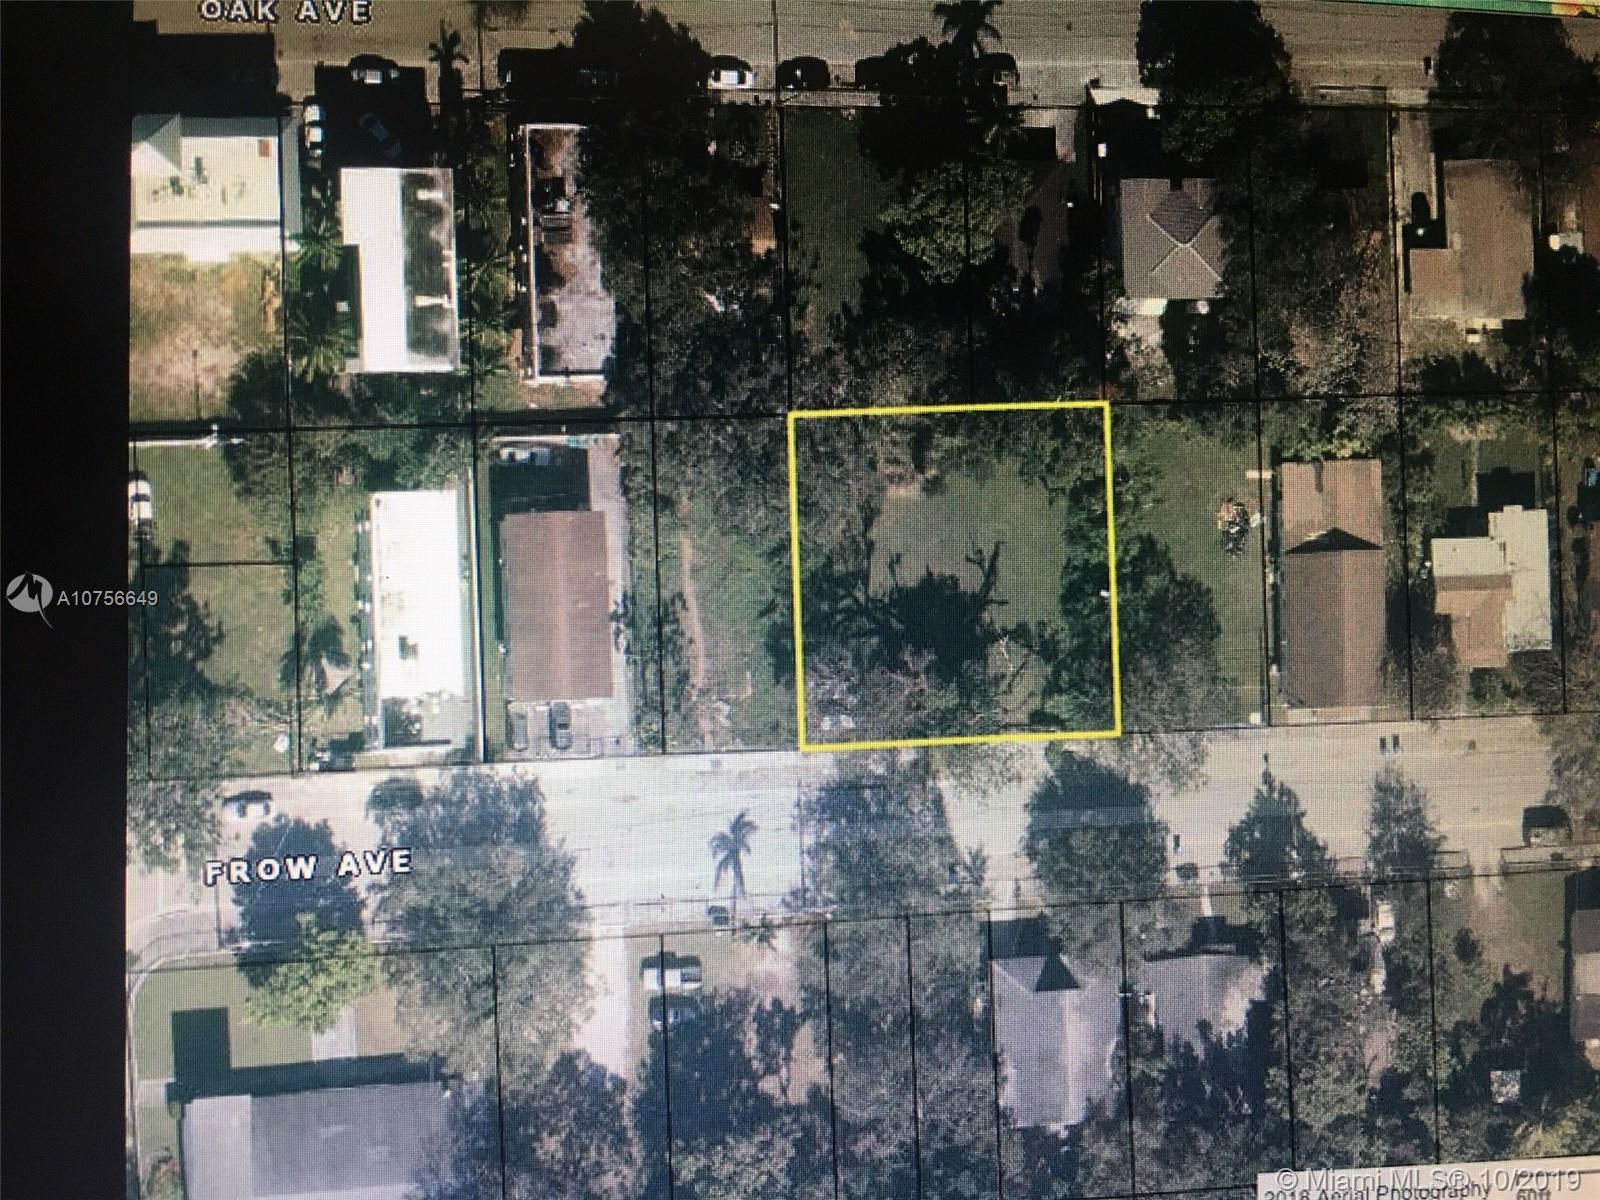 3663  Frow Ave  For Sale A10756649, FL